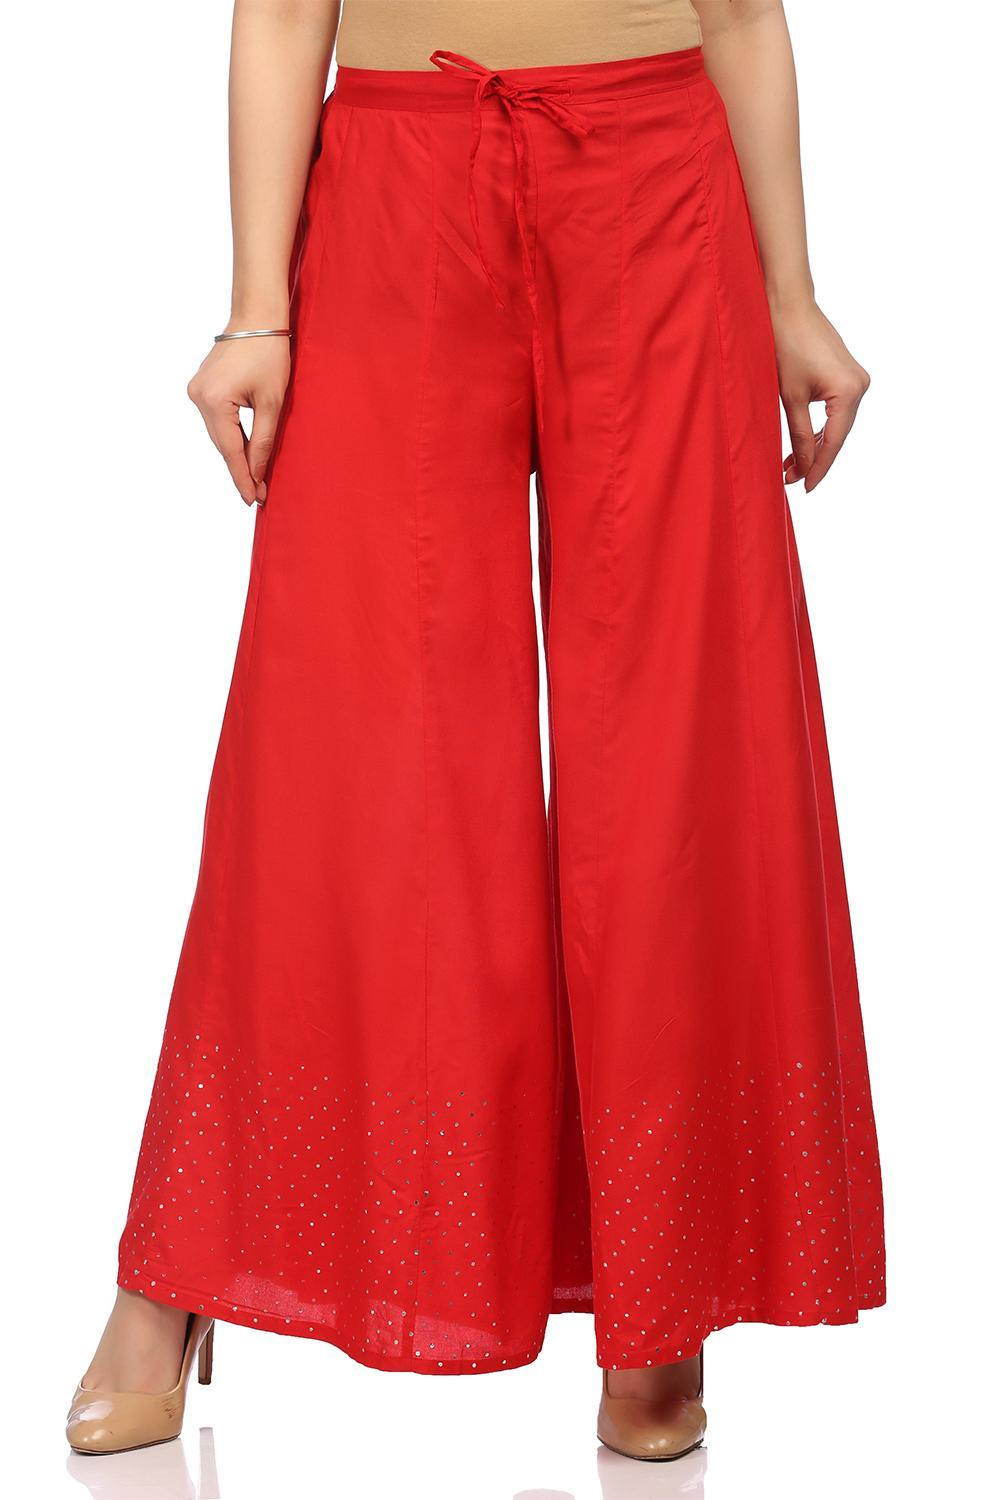 Red Viscose Palazzo - CORE13903SS18RED